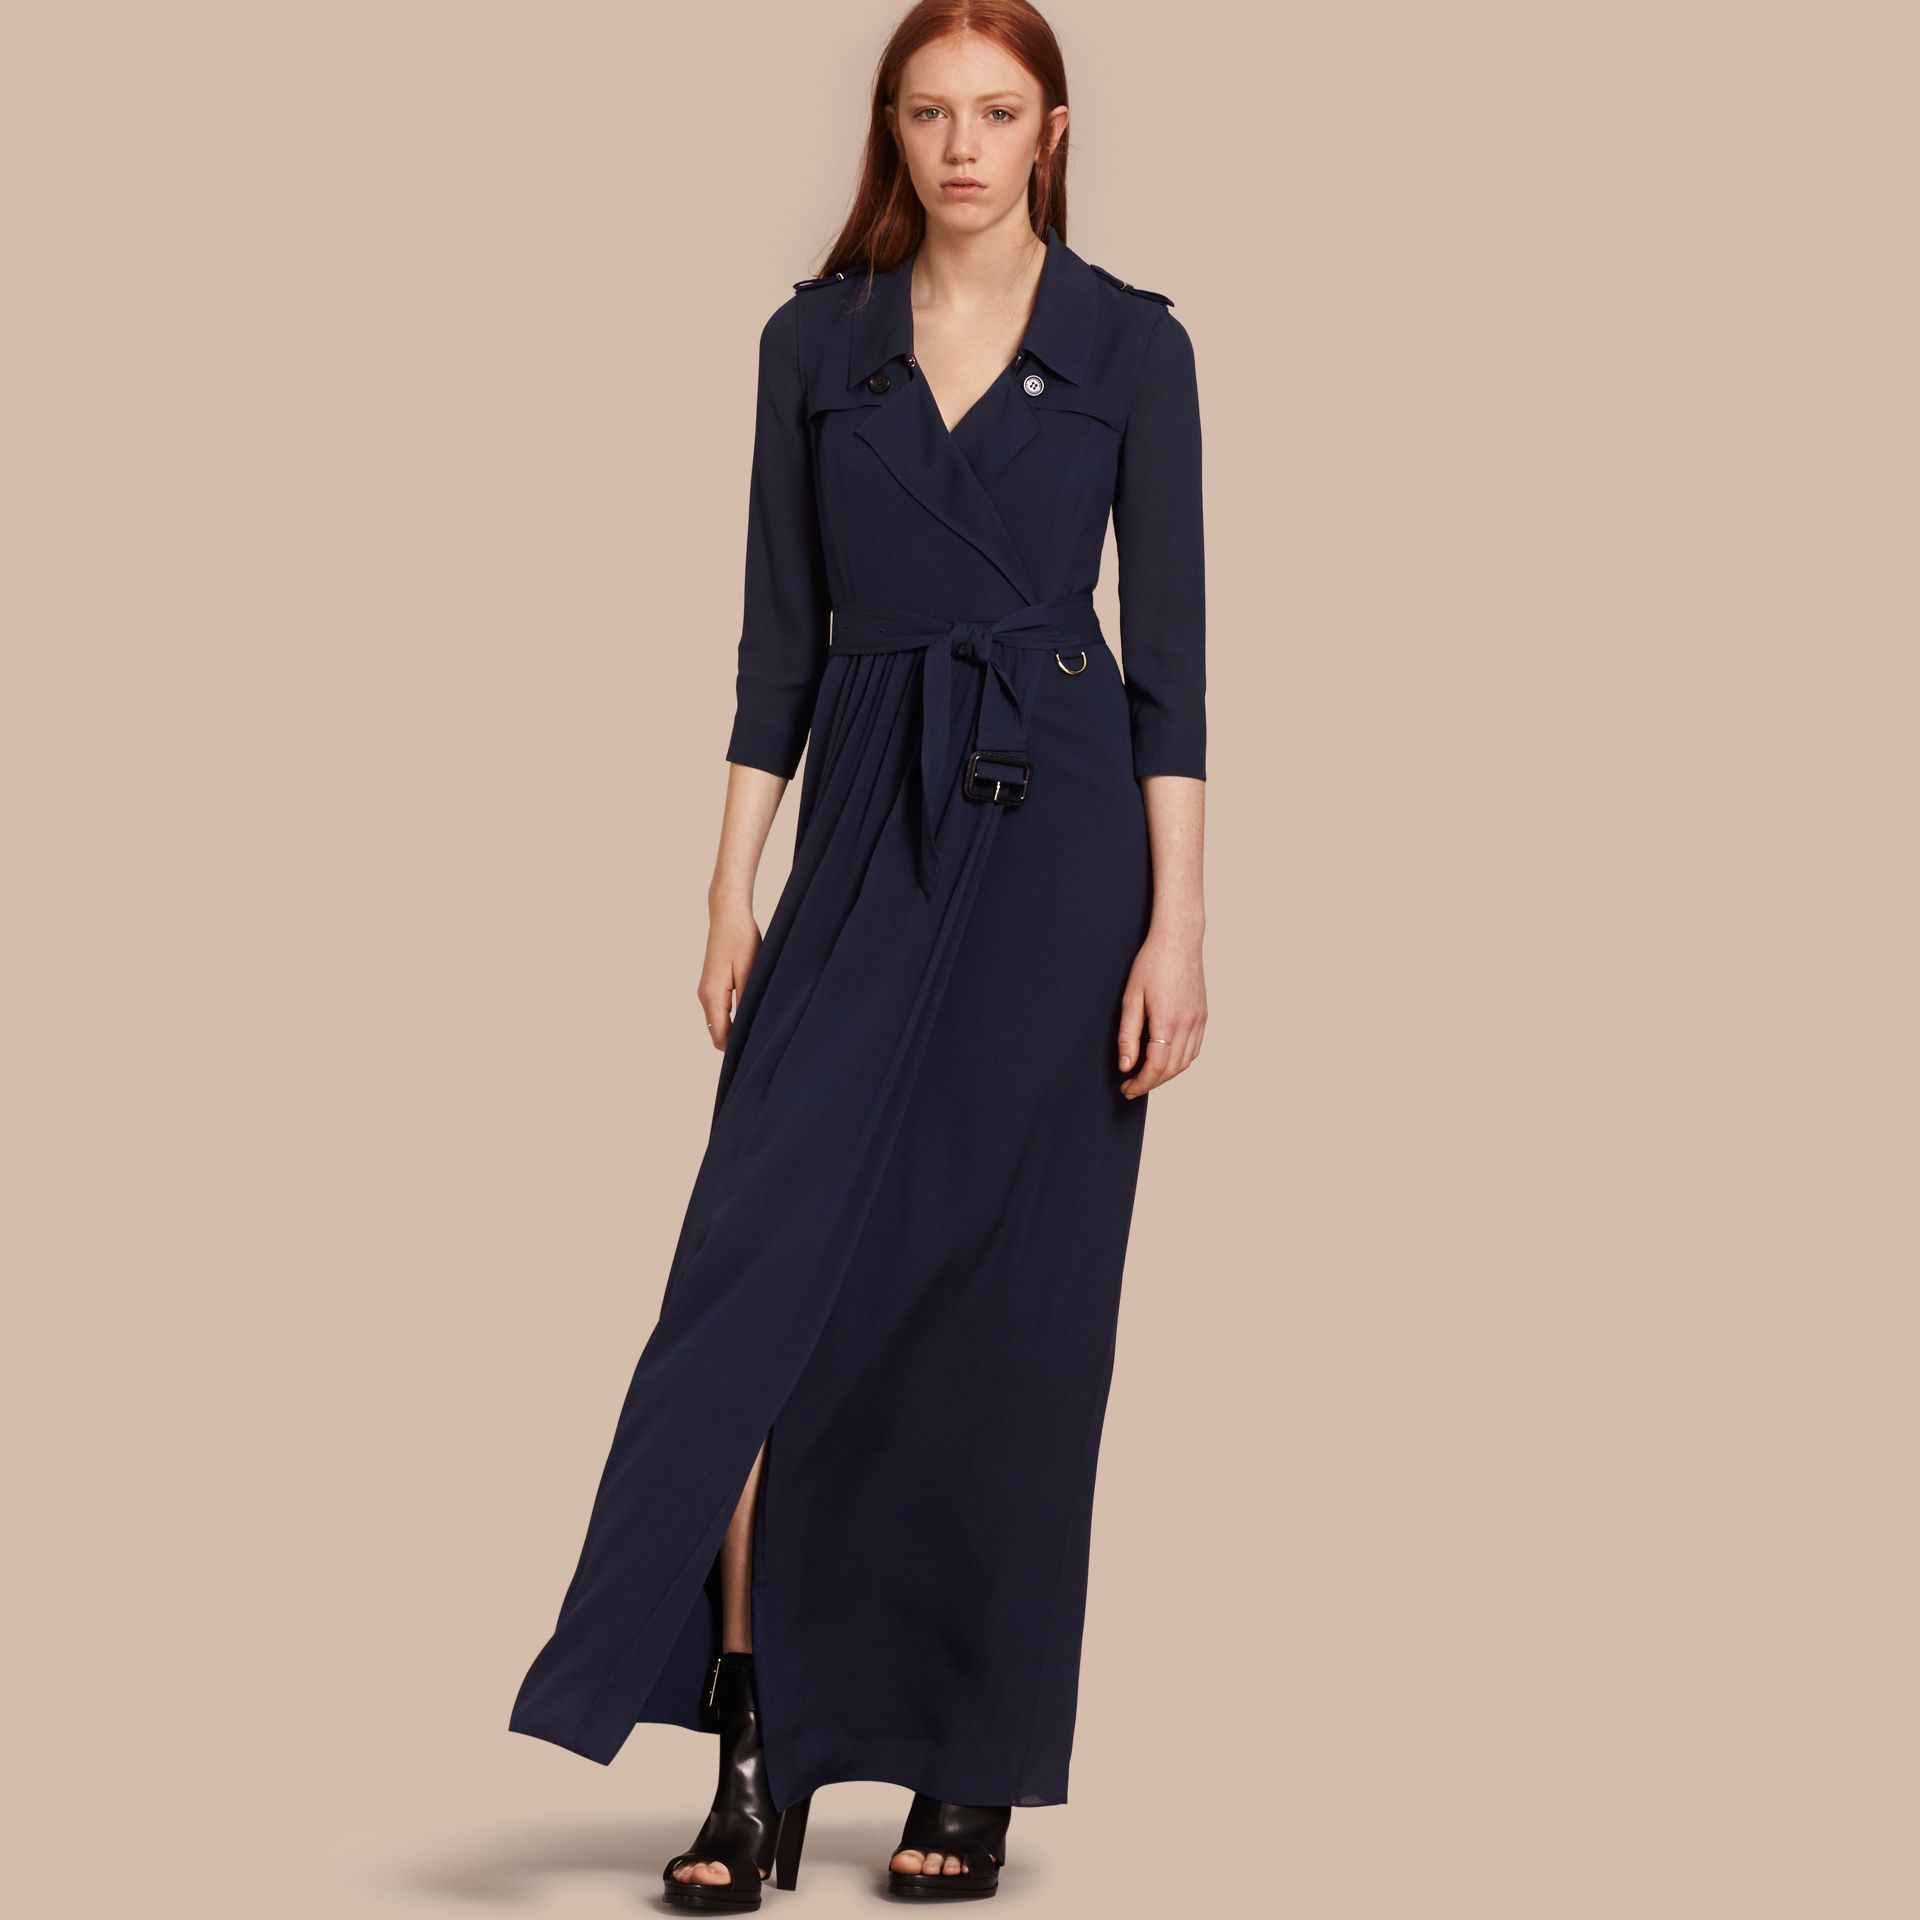 Silk Trench Dress in Navy - Women | Burberry - gallery image 1